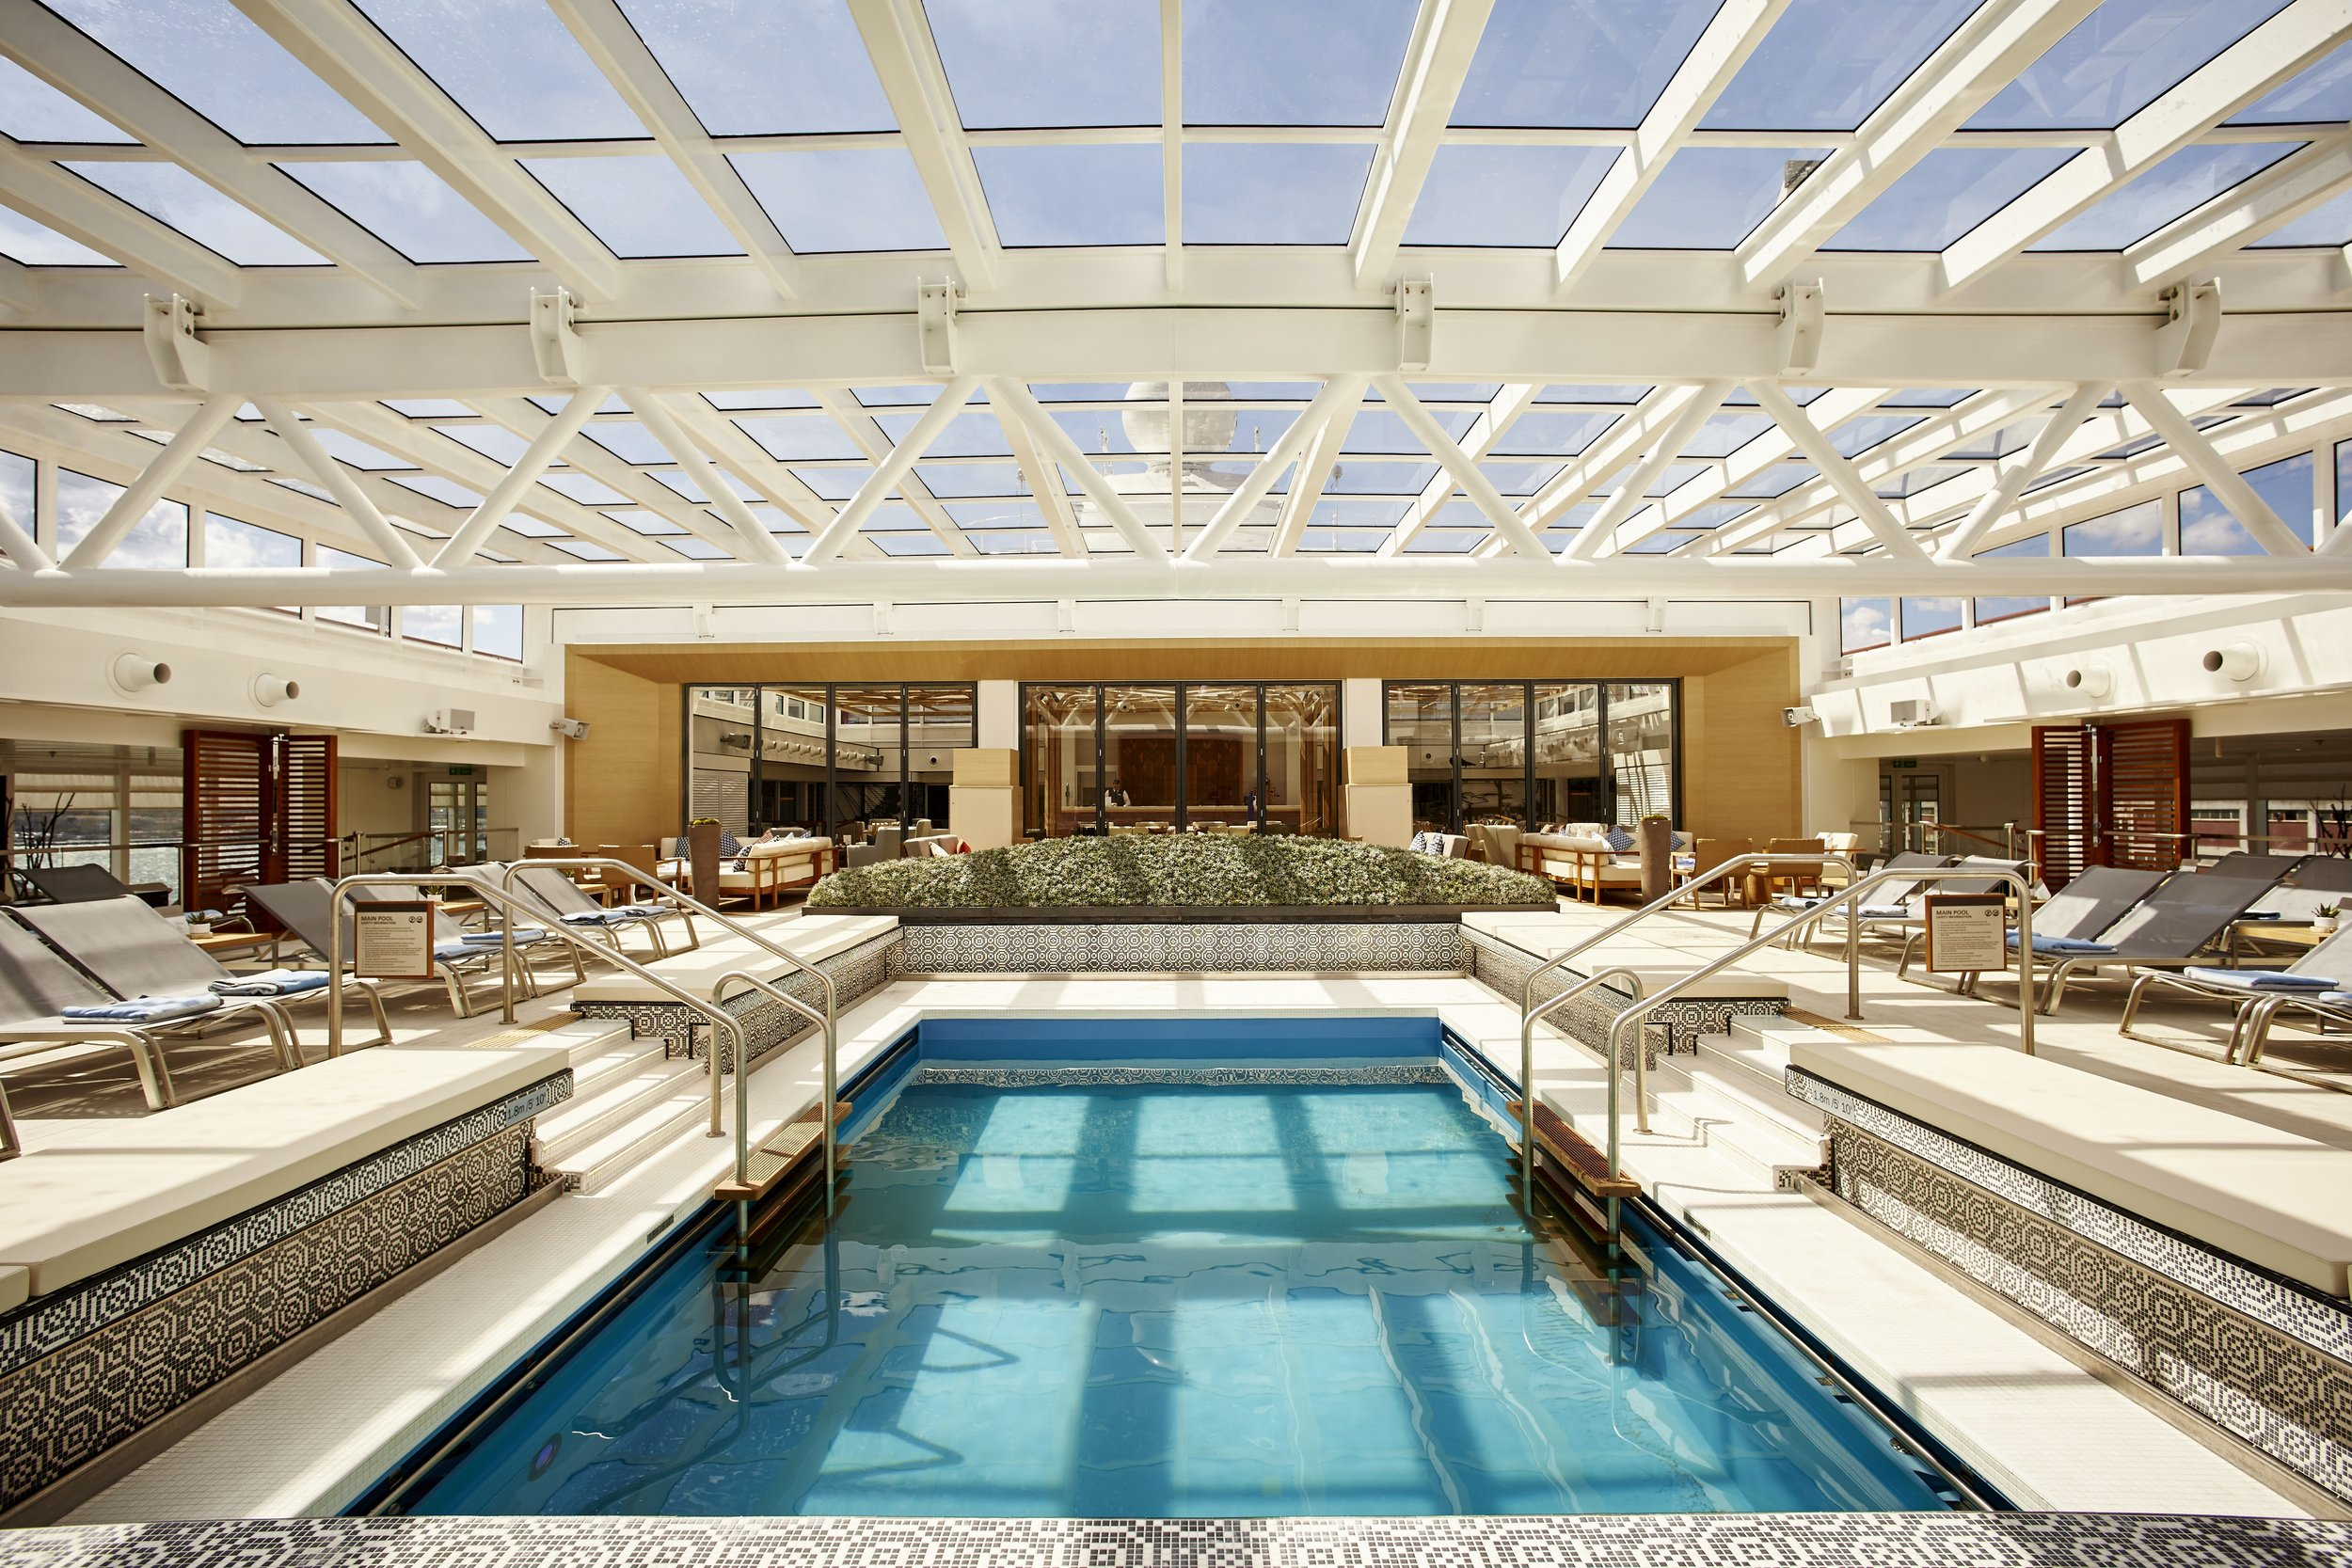 Main pool, shown with roof closed  (photo from Viking website)